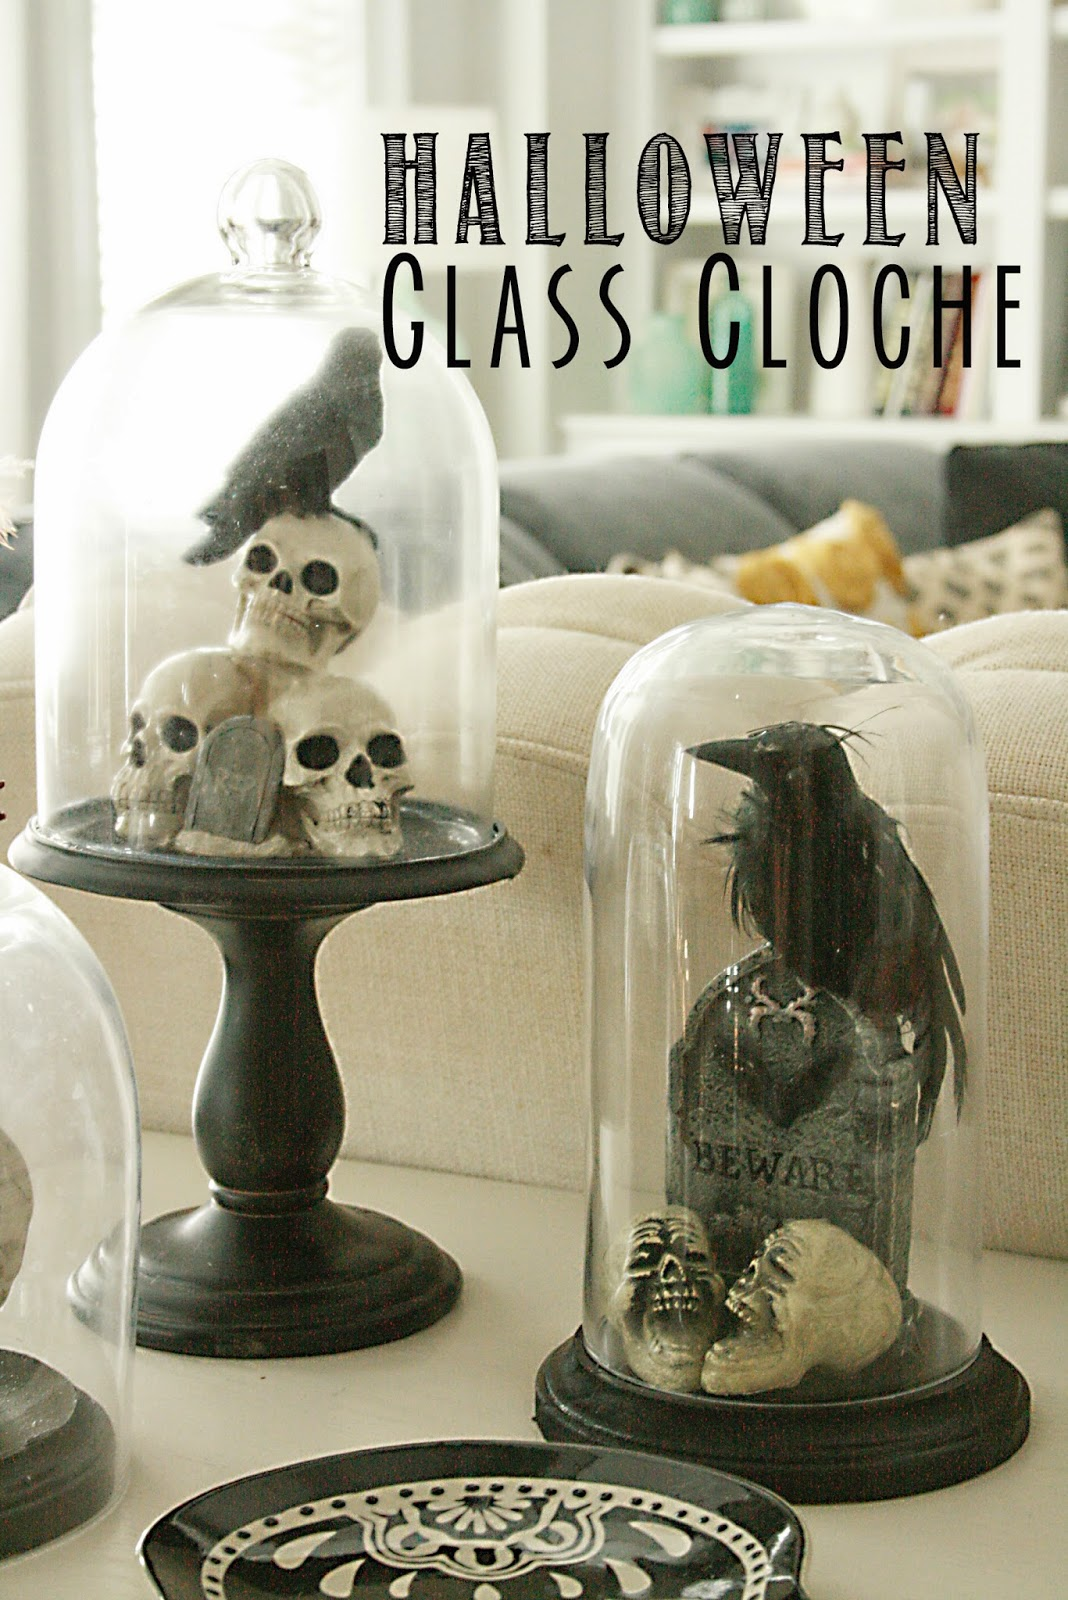 Best Diy Halloween Glass Cloche Darling Darleen A This Month